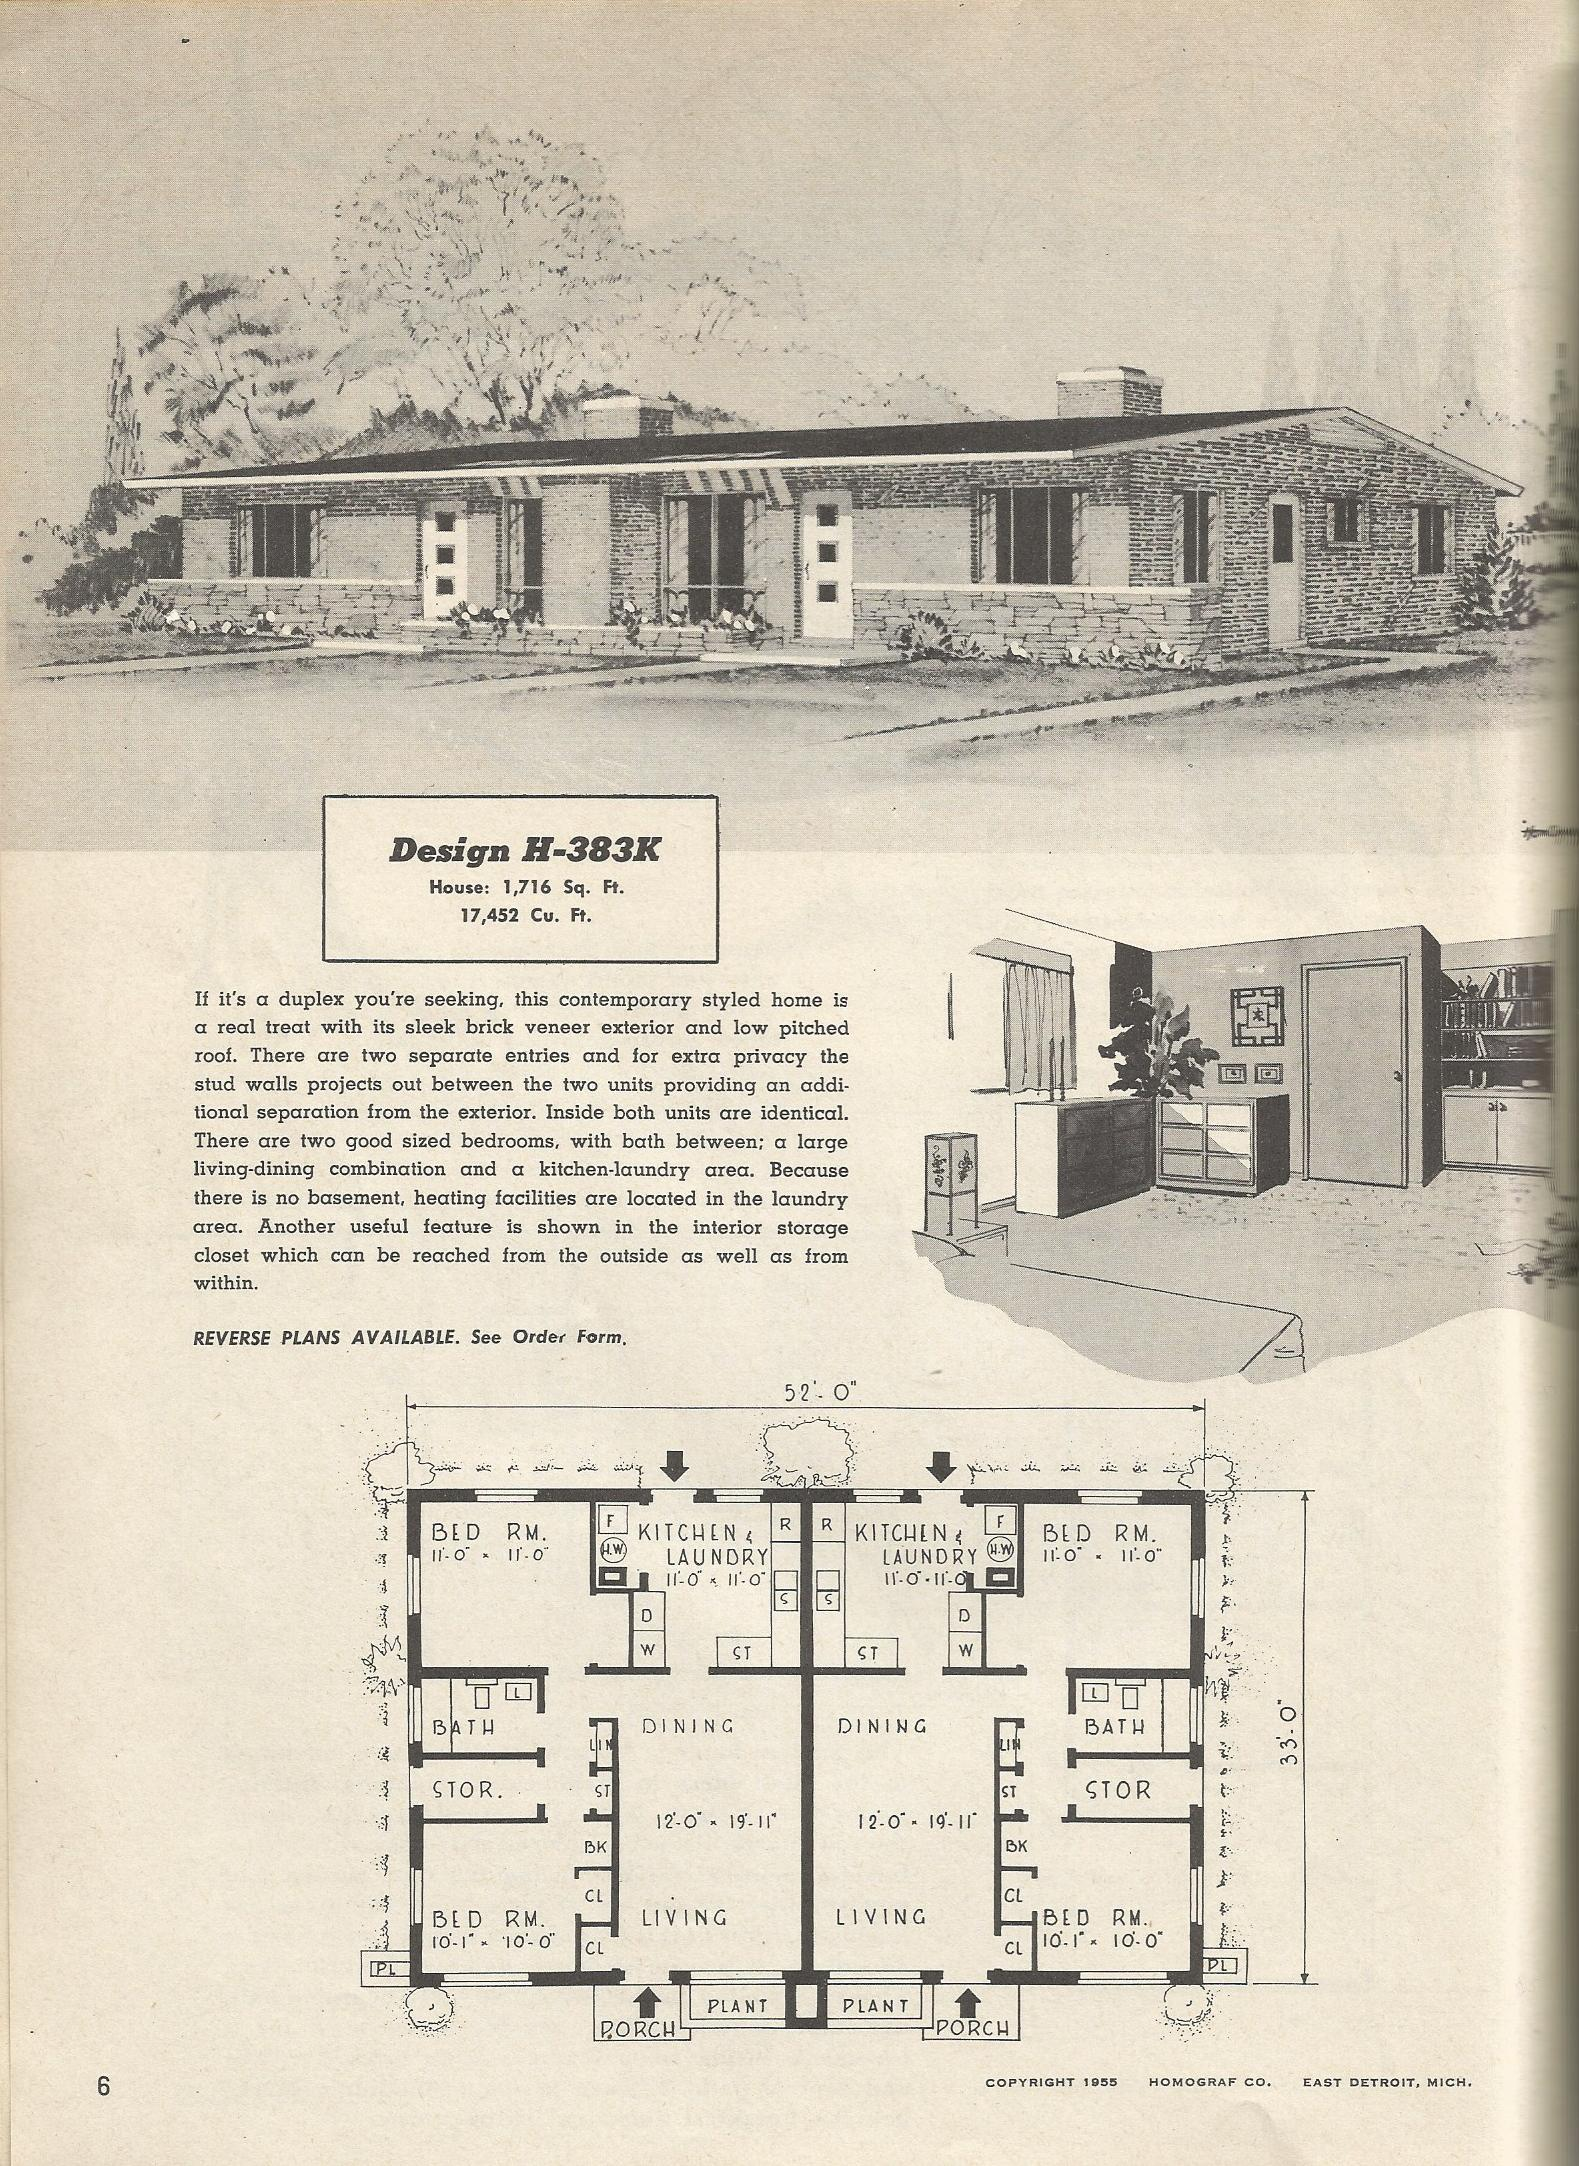 Vintage house plans 383k for Vintage ranch house plans